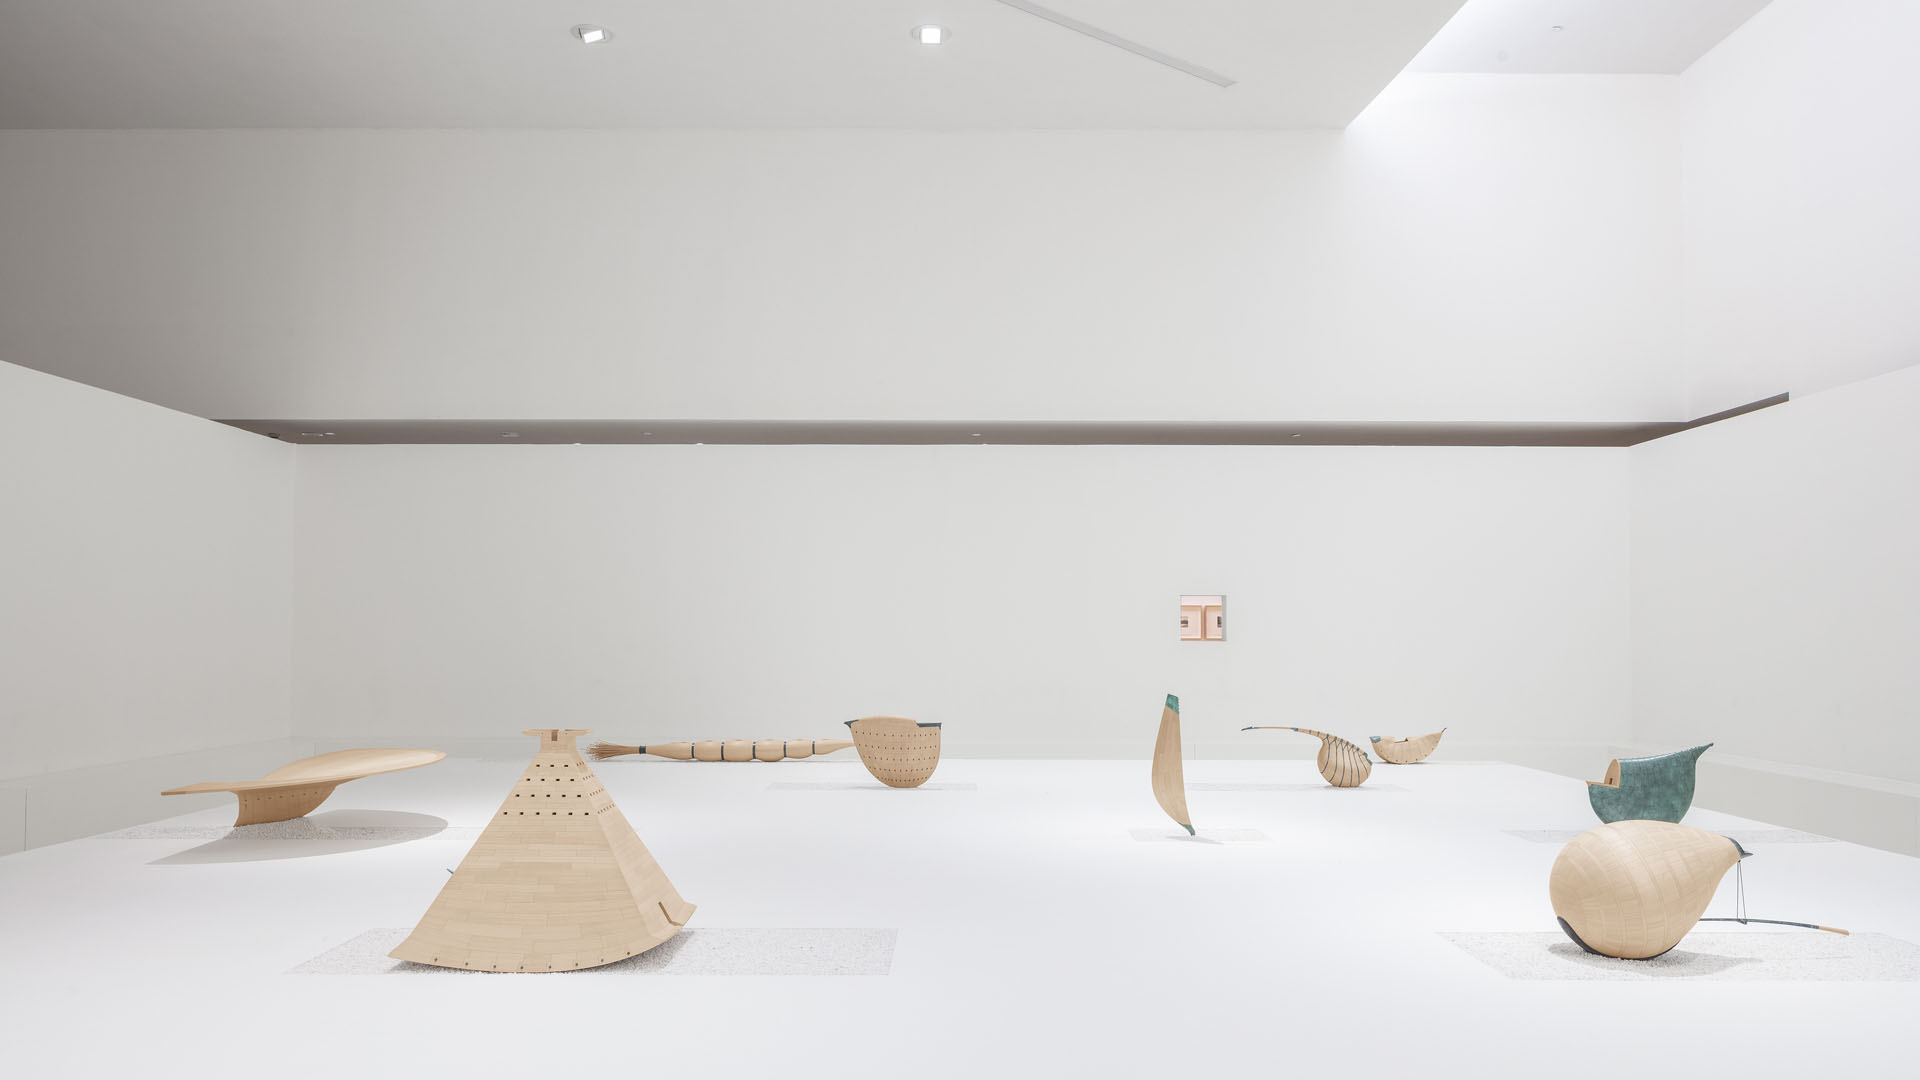 Sculptures of To Kardizu by Chi Wing Lo, along with his architecture, interior, furniture, objects and drawing, with a creation span of over 30 years, were presented in a solo exhibition titled ESSENCE CHI WING LO at the Alvaro Siza's China Design Museum in Hangzhou in 2019.